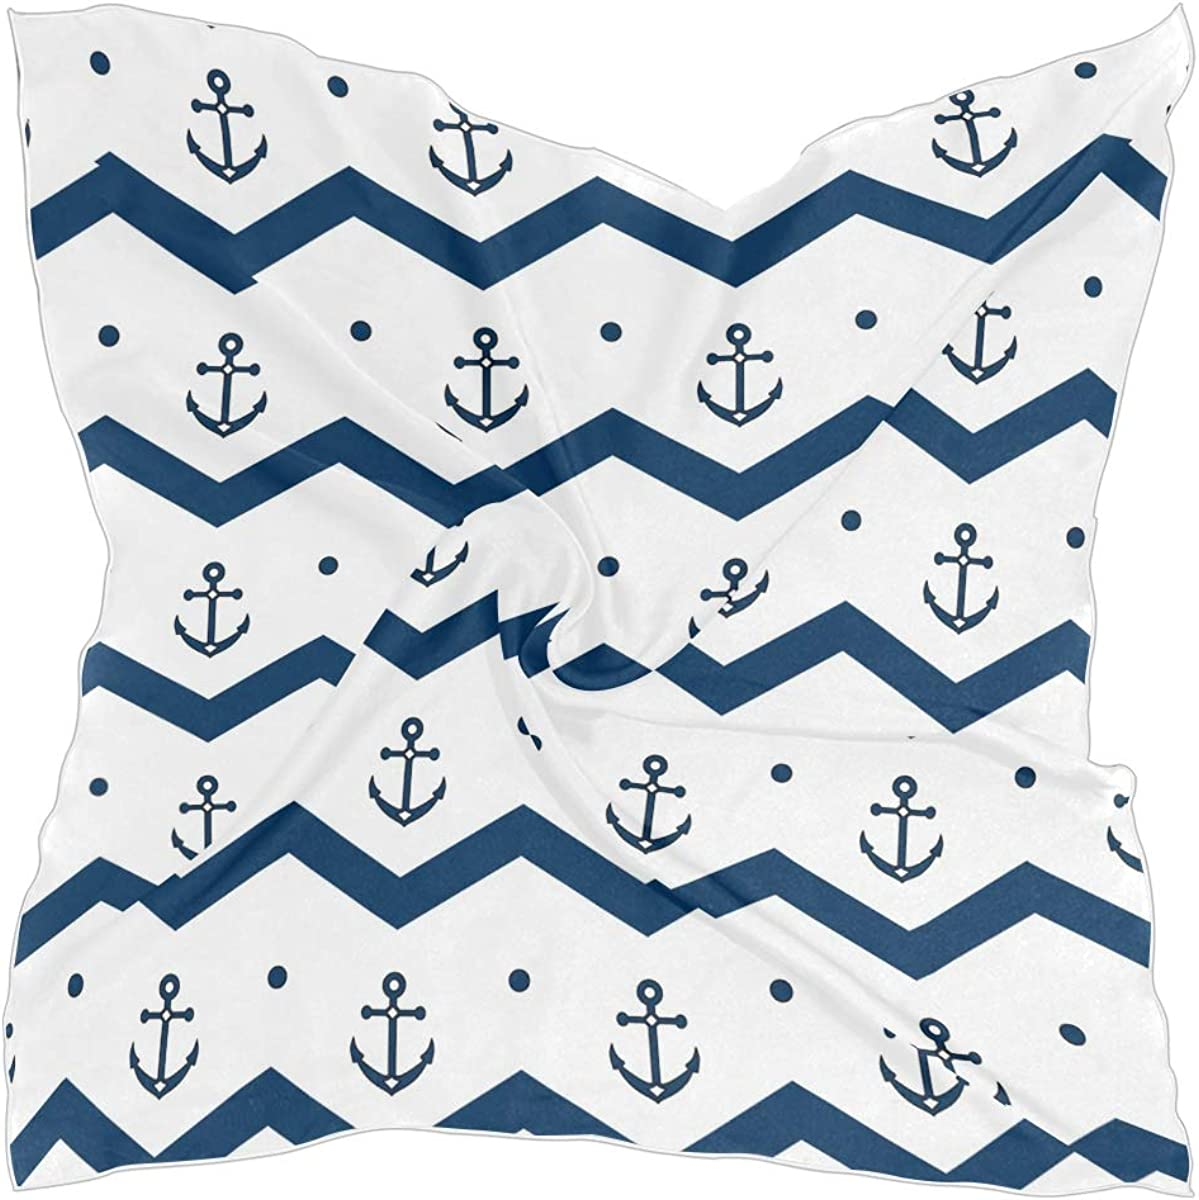 ALAZA Anchors in Blue and White Square Scarf Polyester Lightweight Fashion Elegant Head Neck Scarf Kerchief for Women Girls